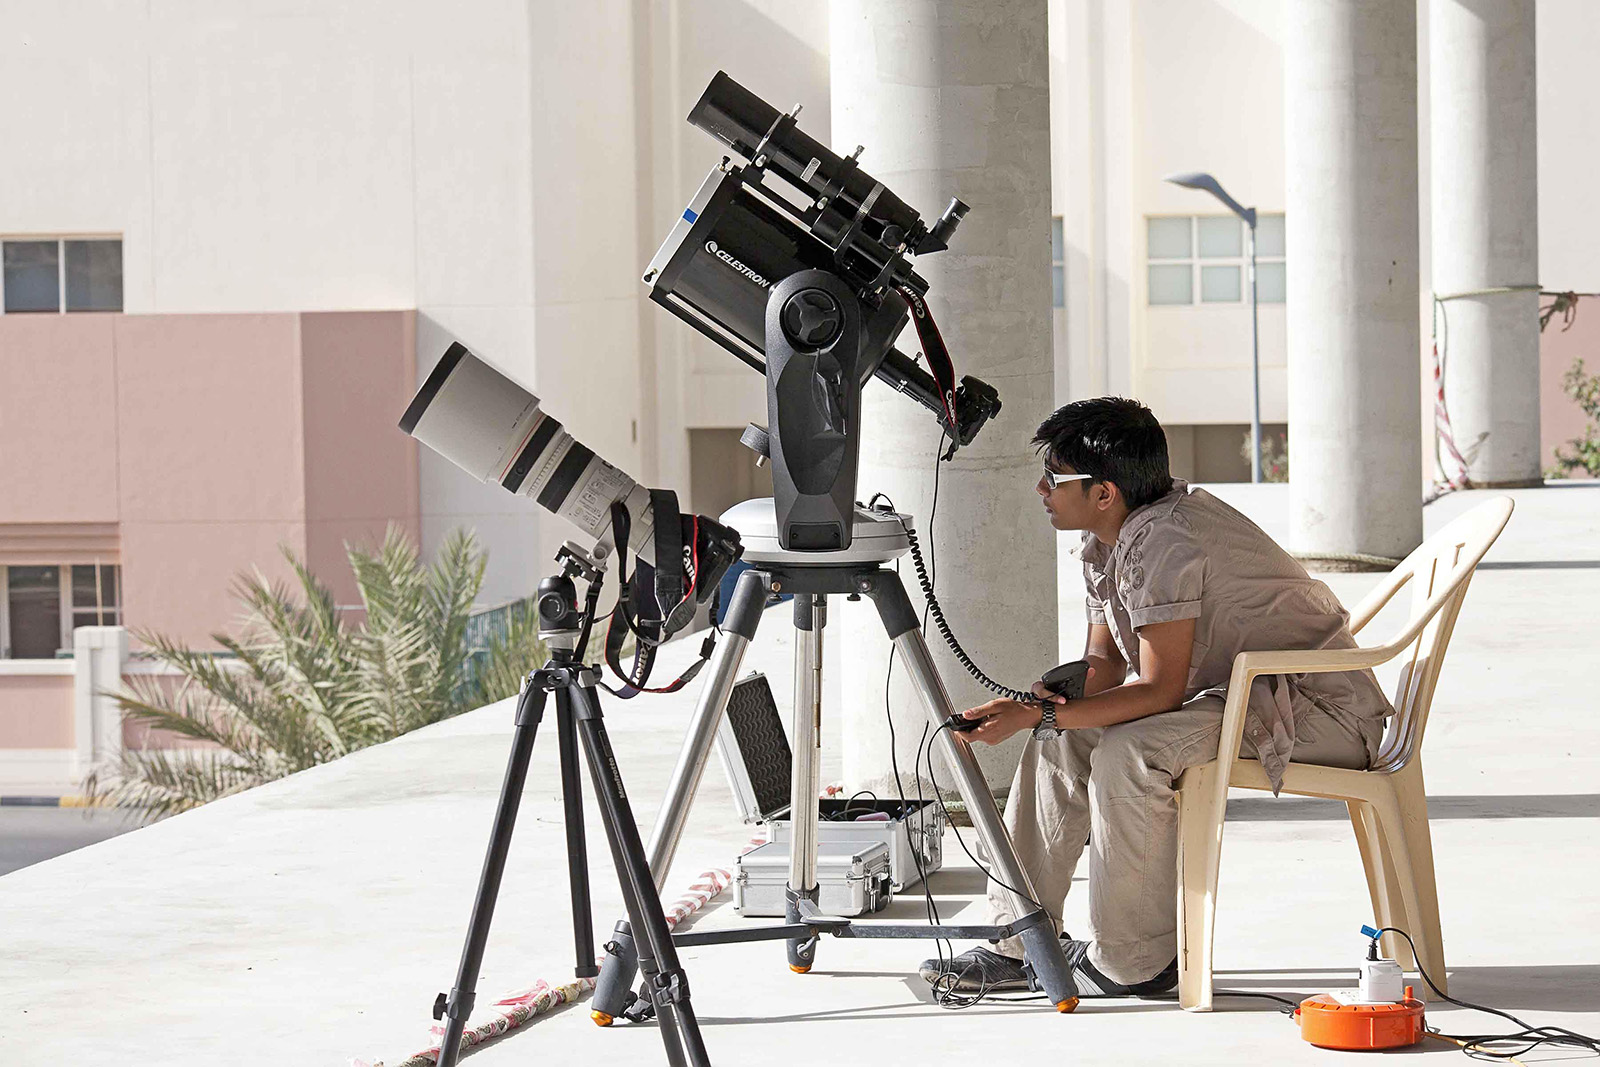 JATHIN  WITH  THE  TELESCOPE  WITH  THE  CAMERA  LENS  KITS